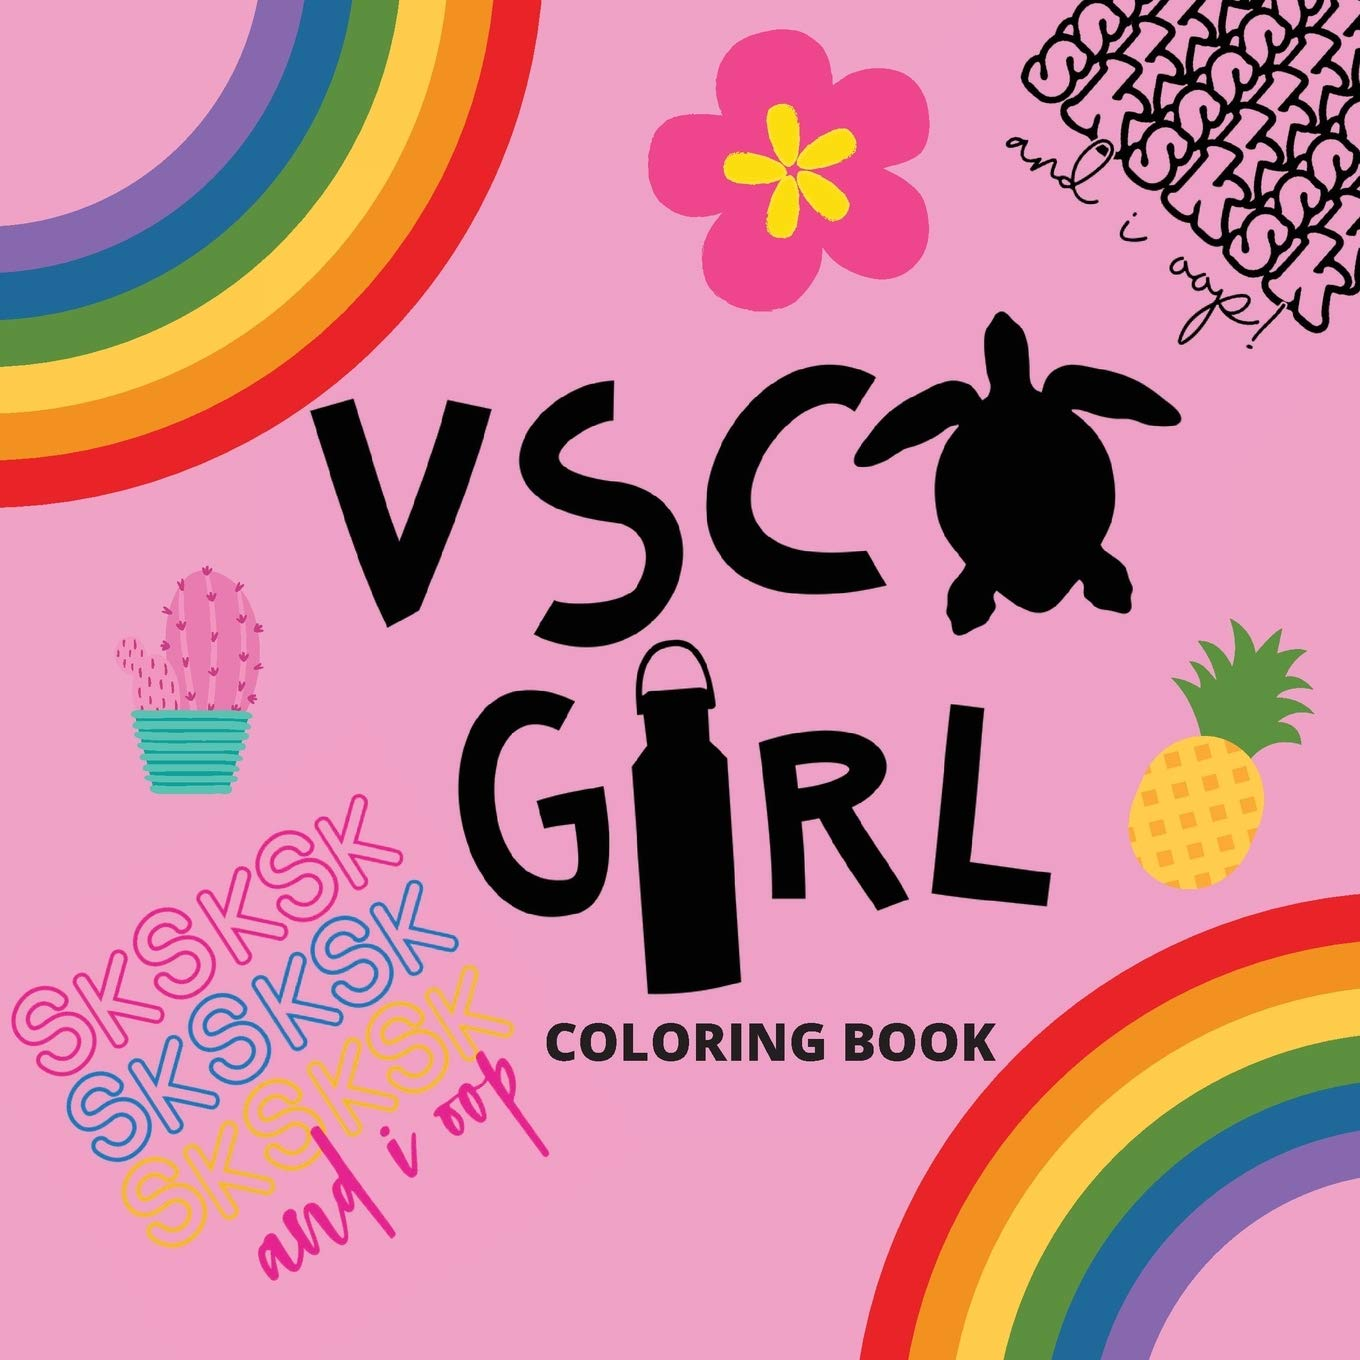 Vsco Girl Coloring Book: For Trendy Girls with Good Vibes who Loves Scrunchies and Turtles!